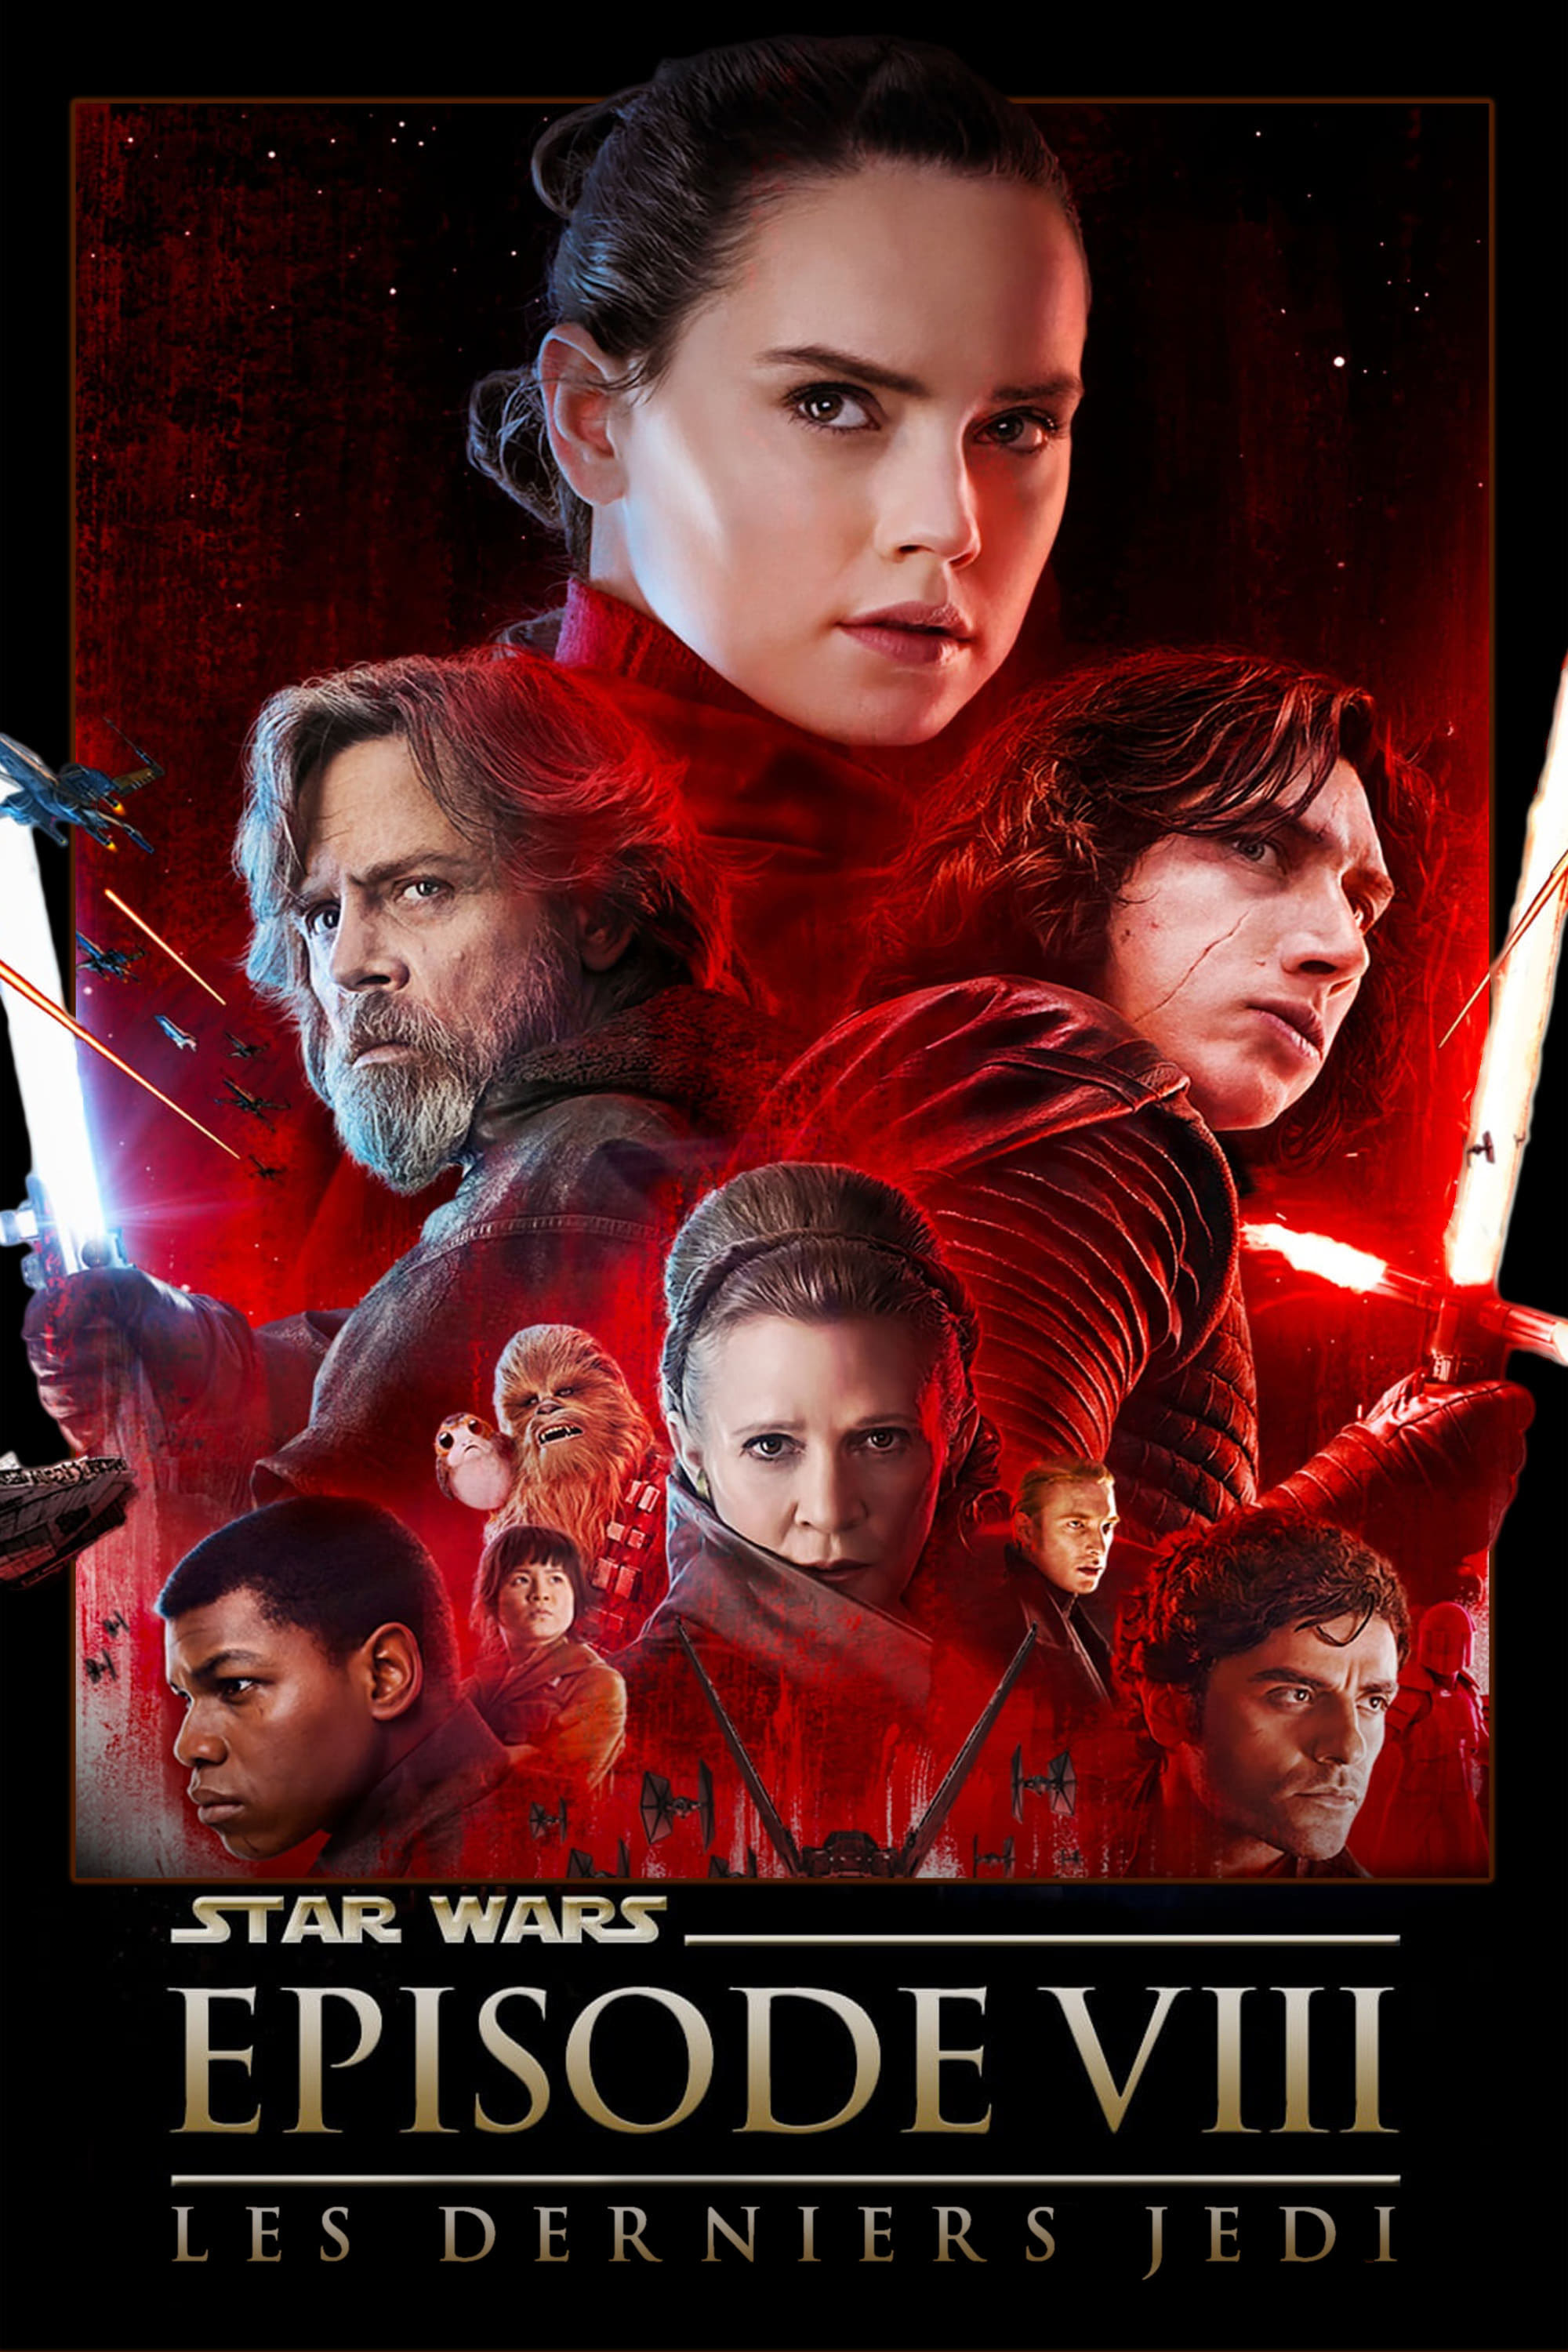 Star Wars 8 Streaming Vo : streaming, Wars,, épisode, Derniers, Streaming, LibertyLand, LibertyLand,, LibertyVF